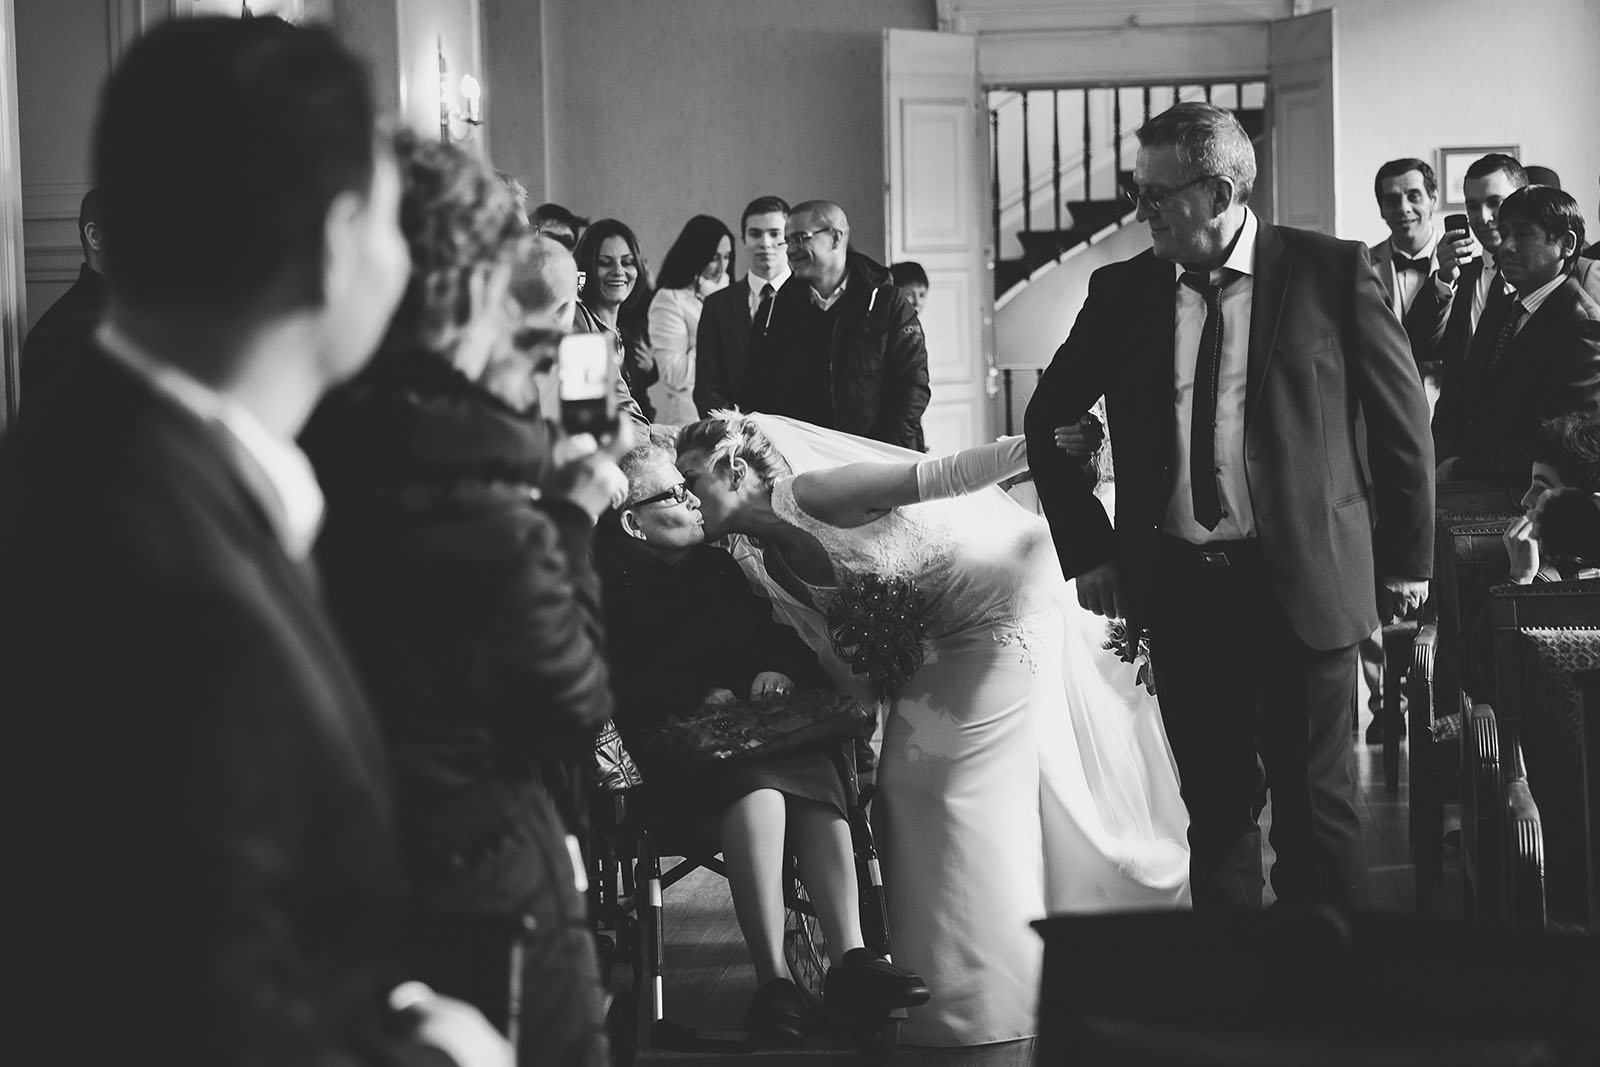 -photographe-mariage-emotion-mamie-grand-mere-bisous-mariee-pere-lyon-mairie-davidpommier